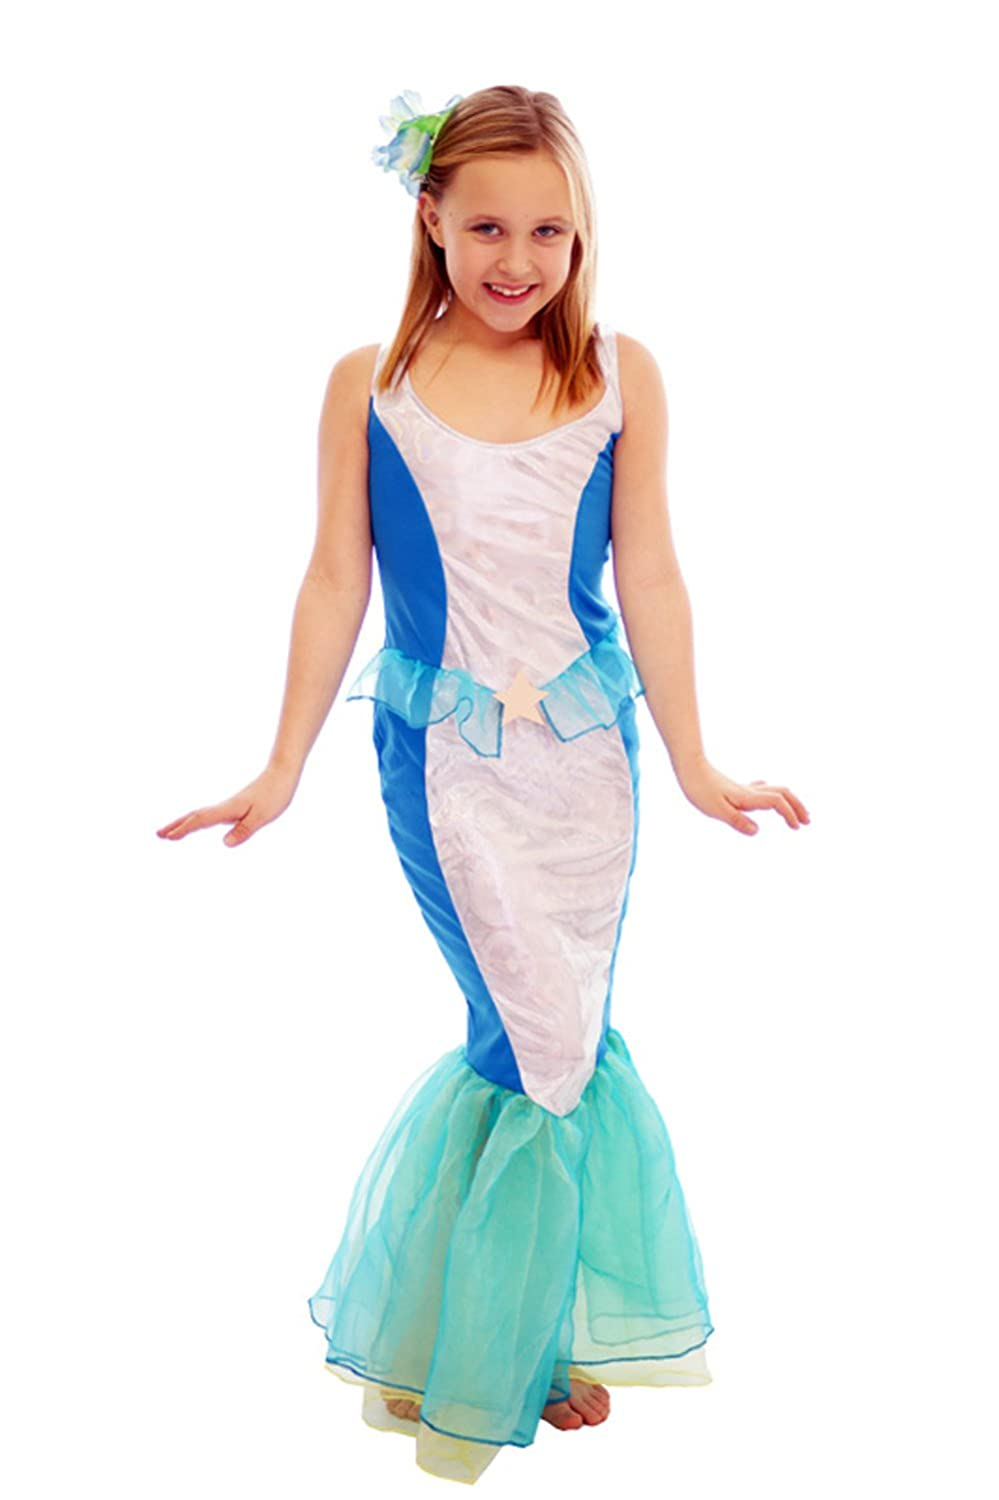 Amazon.com Mermaid of the Sea Girlu0027s Fancy Dress Costume Ages 7-9 Years Toys u0026 Games  sc 1 st  Amazon.com & Amazon.com: Mermaid of the Sea Girlu0027s Fancy Dress Costume Ages 7-9 ...